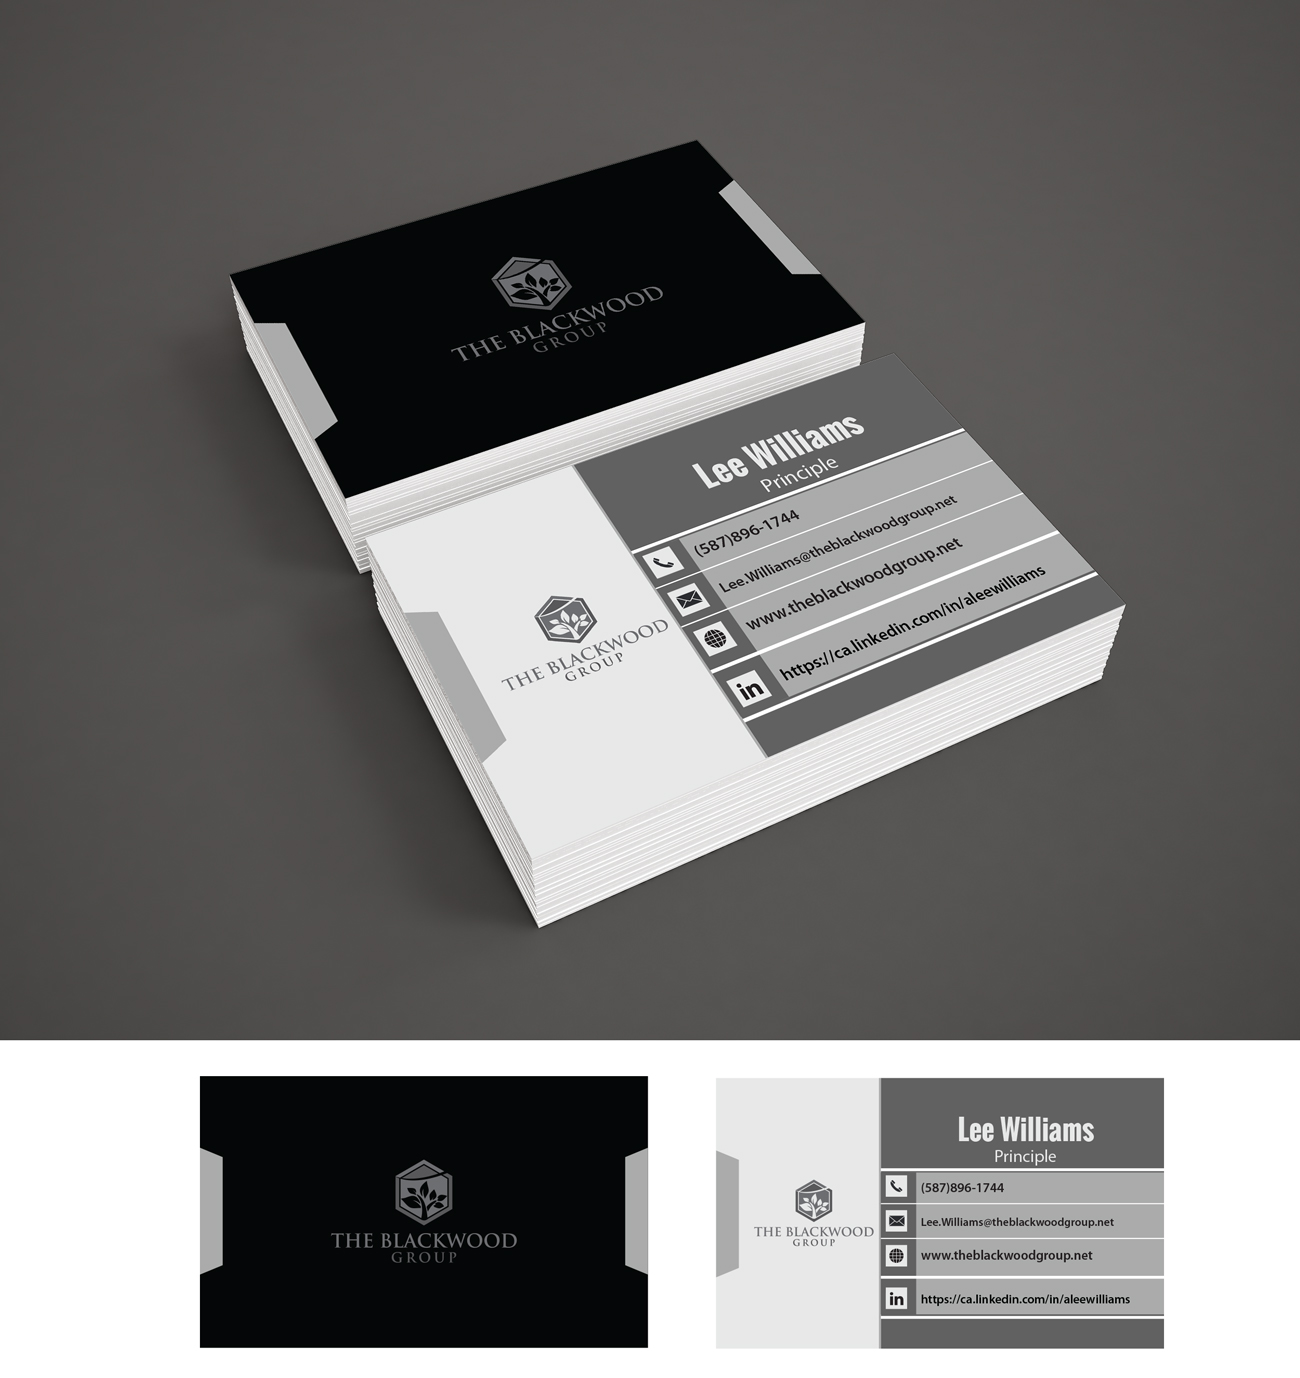 serious professional business card design for the blackwood group